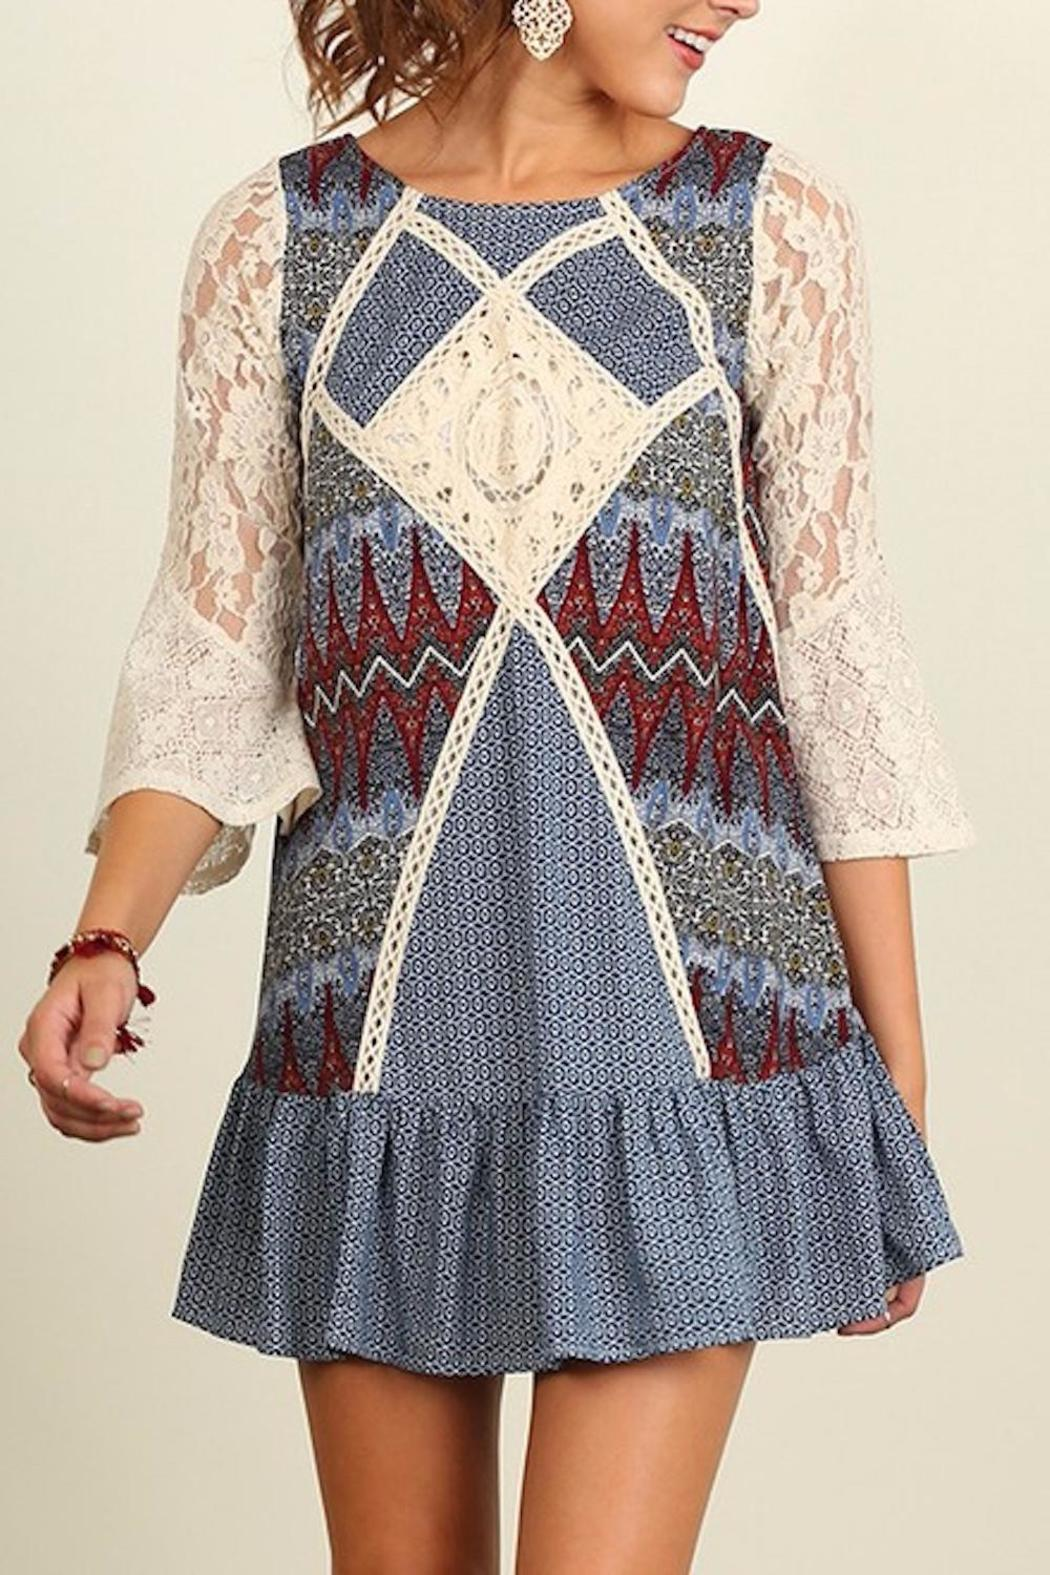 People Outfitter Crochet Patch Dress - Main Image